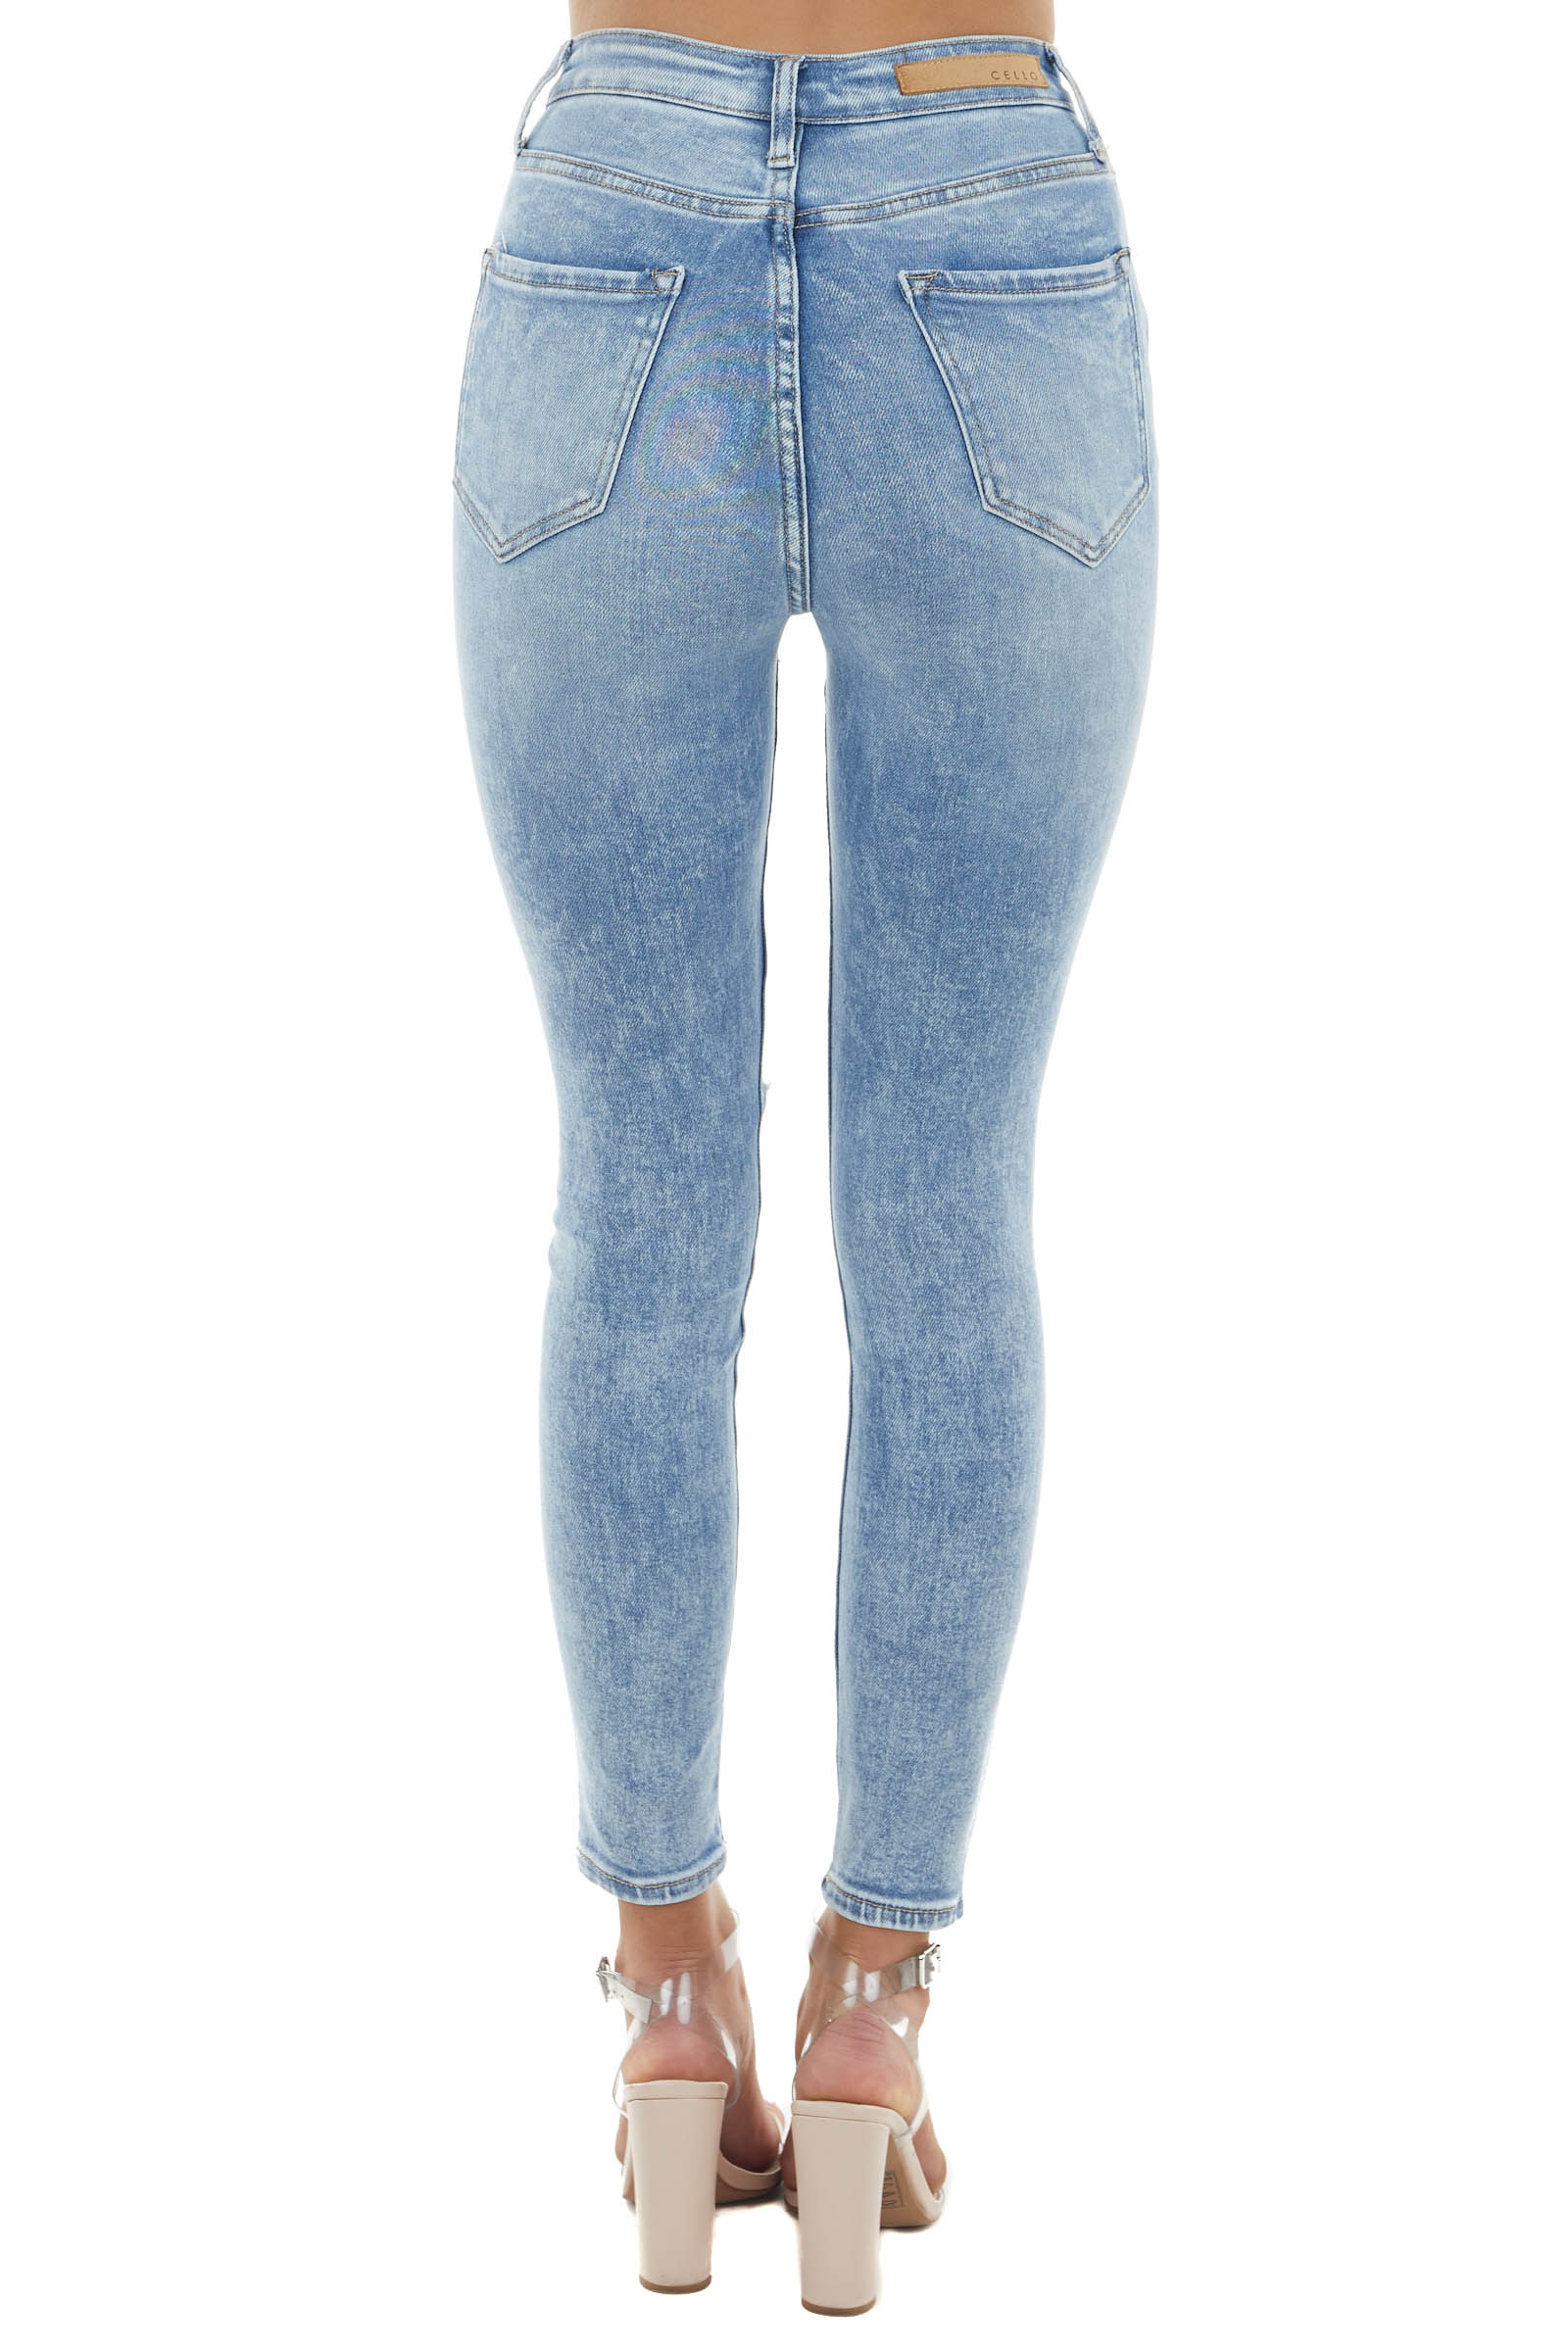 Light Acid Wash High Rise Jeans with Light Distressing